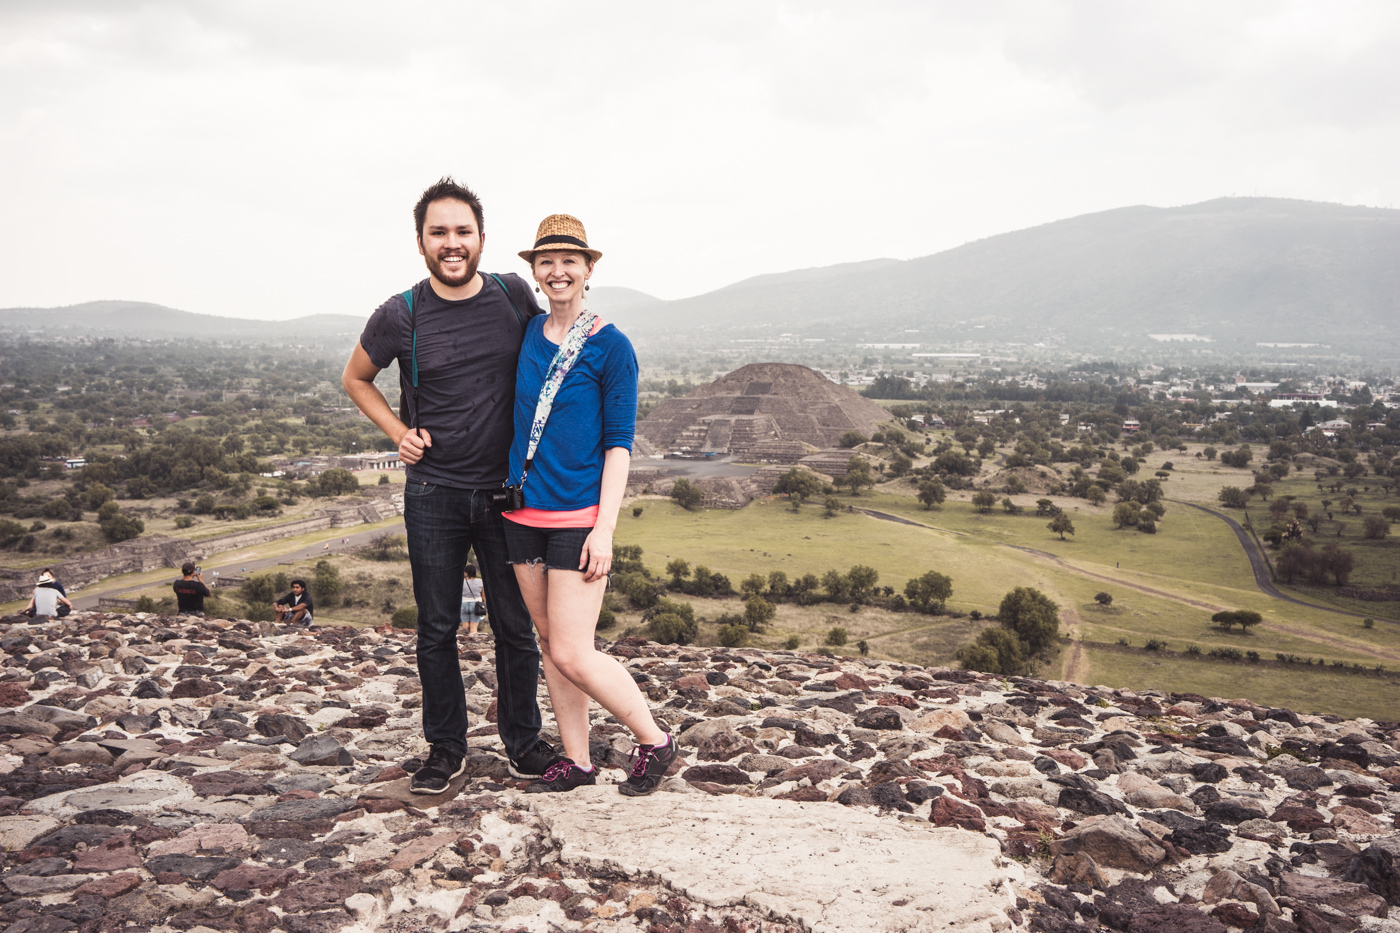 on top of the Pyramid of the Sun, view of Pyramid of the Moon, Teotihuacán, Mexico